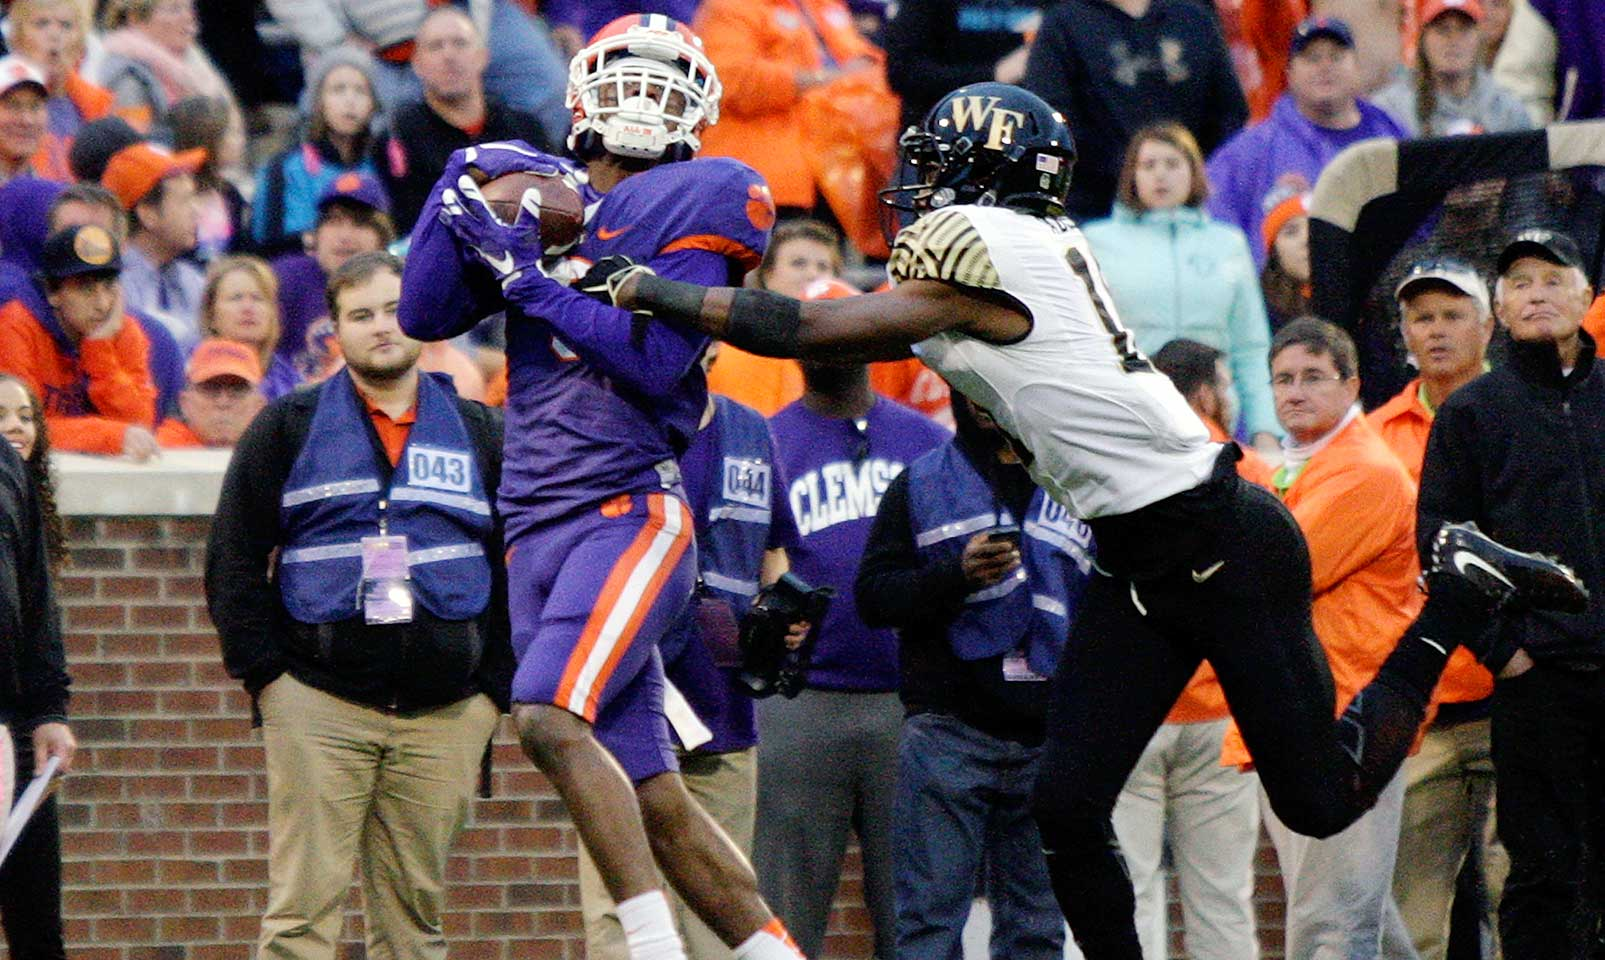 Clemson 33, Wake Forest 13: The Tigers' defense shut down the Demon Deacons, holding them to 152 yards of offense and 1.2 yards per carry. Deshaun Watson came through with another big game, passing for 343 yards with four total touchdowns.